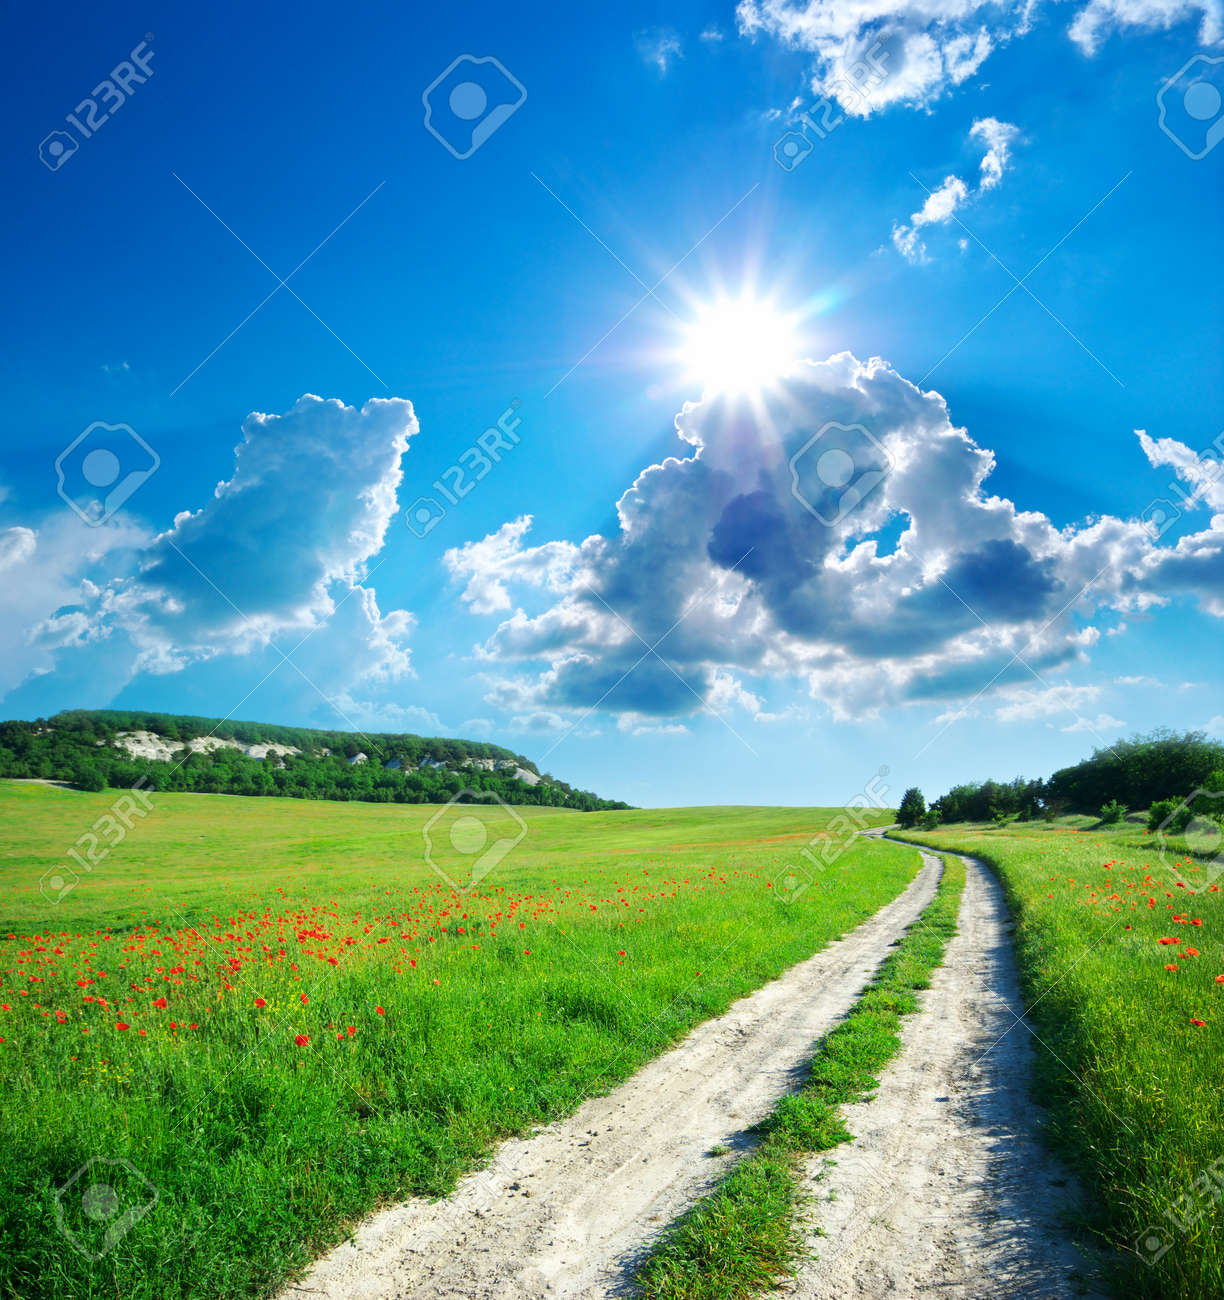 Lane in meadow and deep blue sky. Nature design. - 10998552